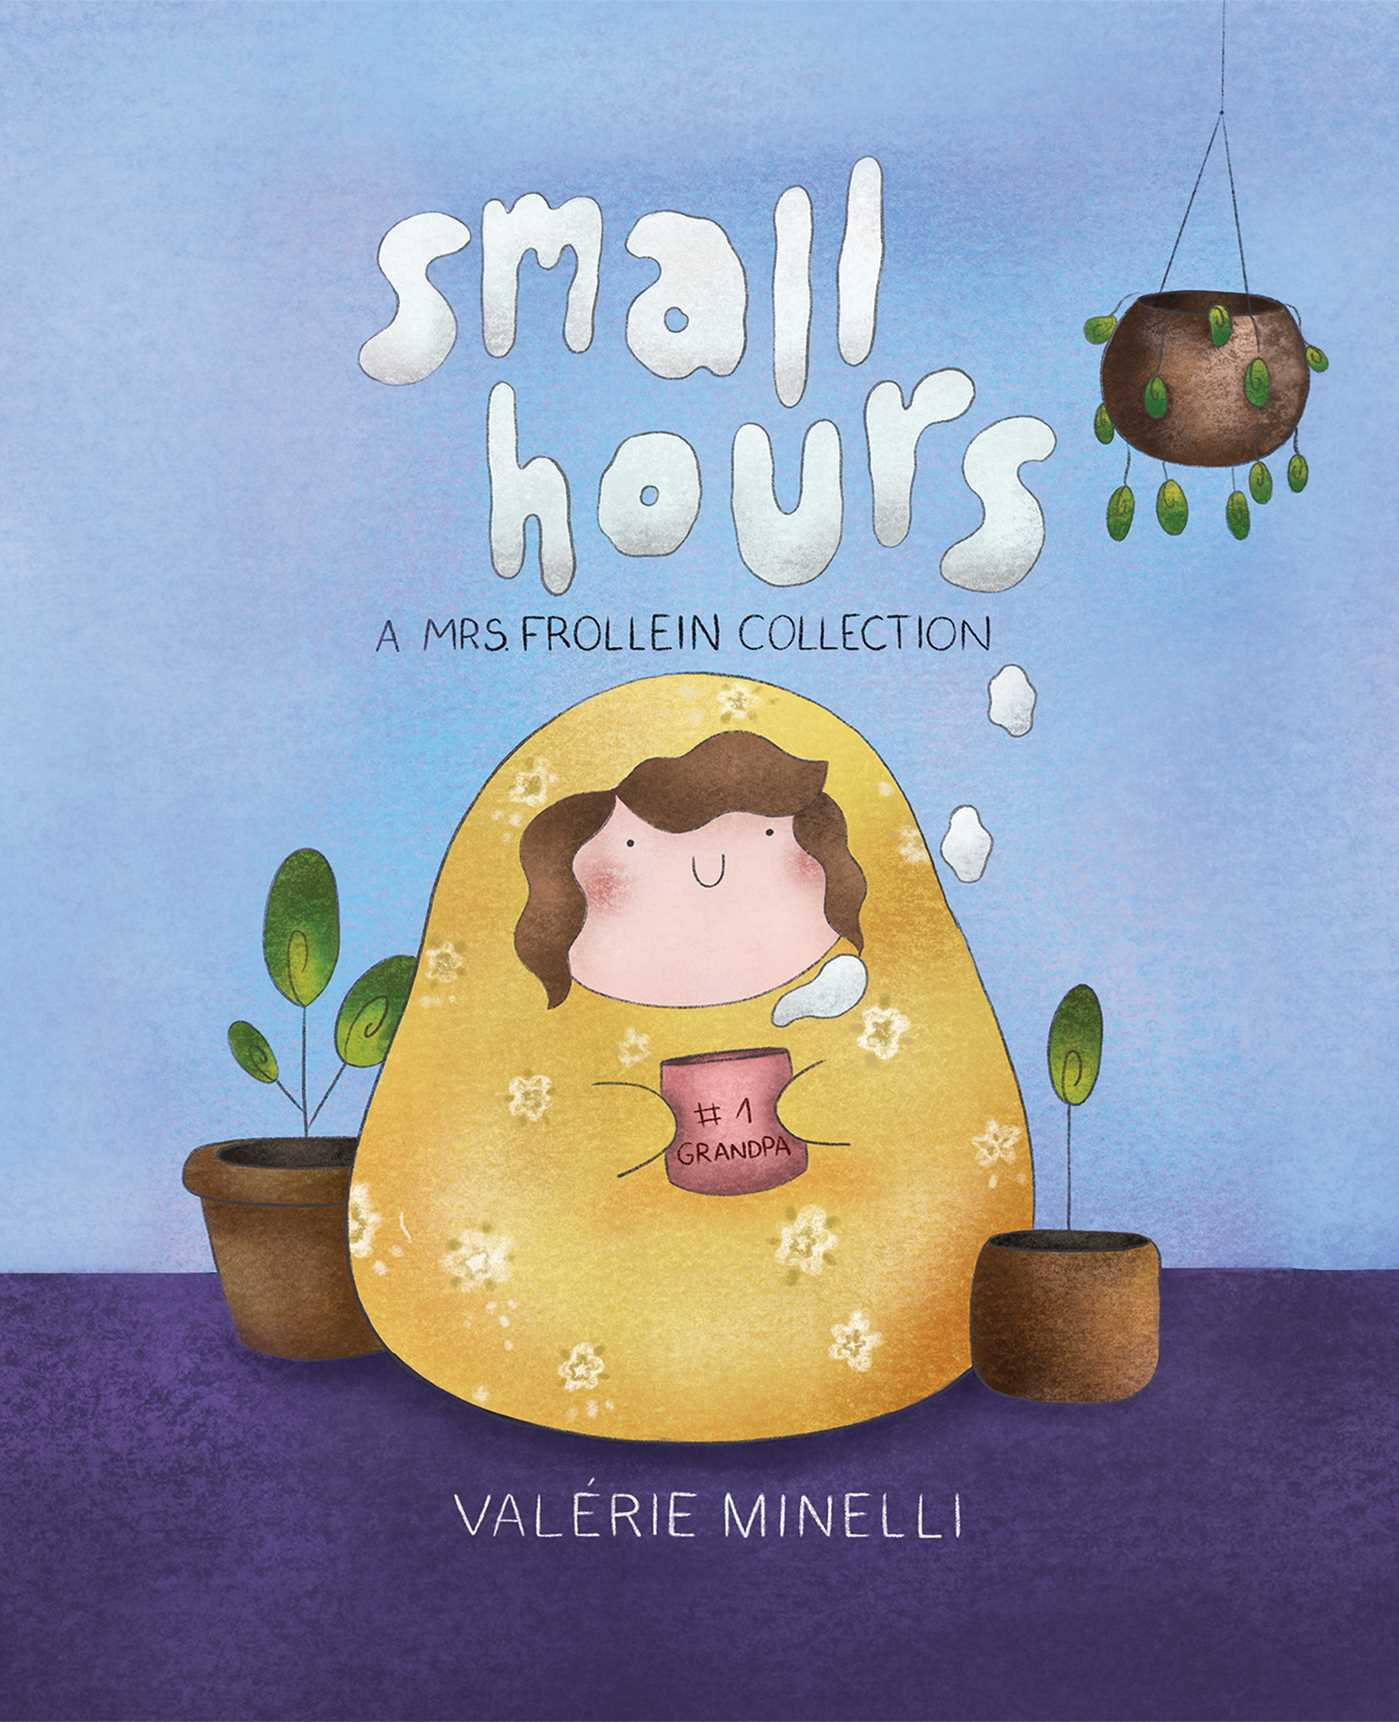 The Mrs. Frollein Collection: Small Hours